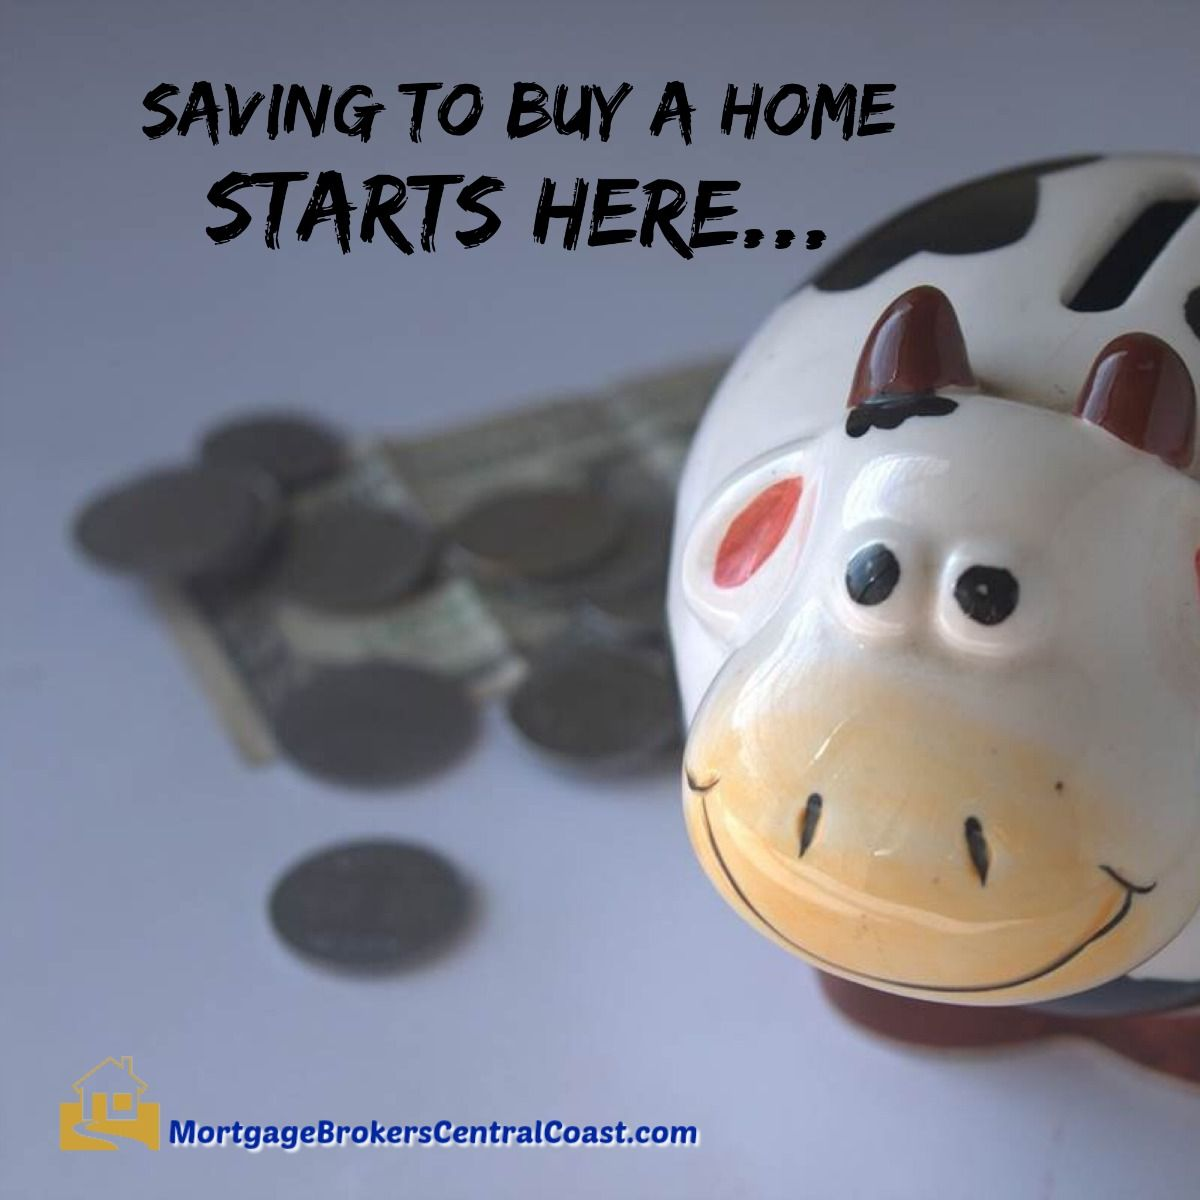 Saving for a home starts here...